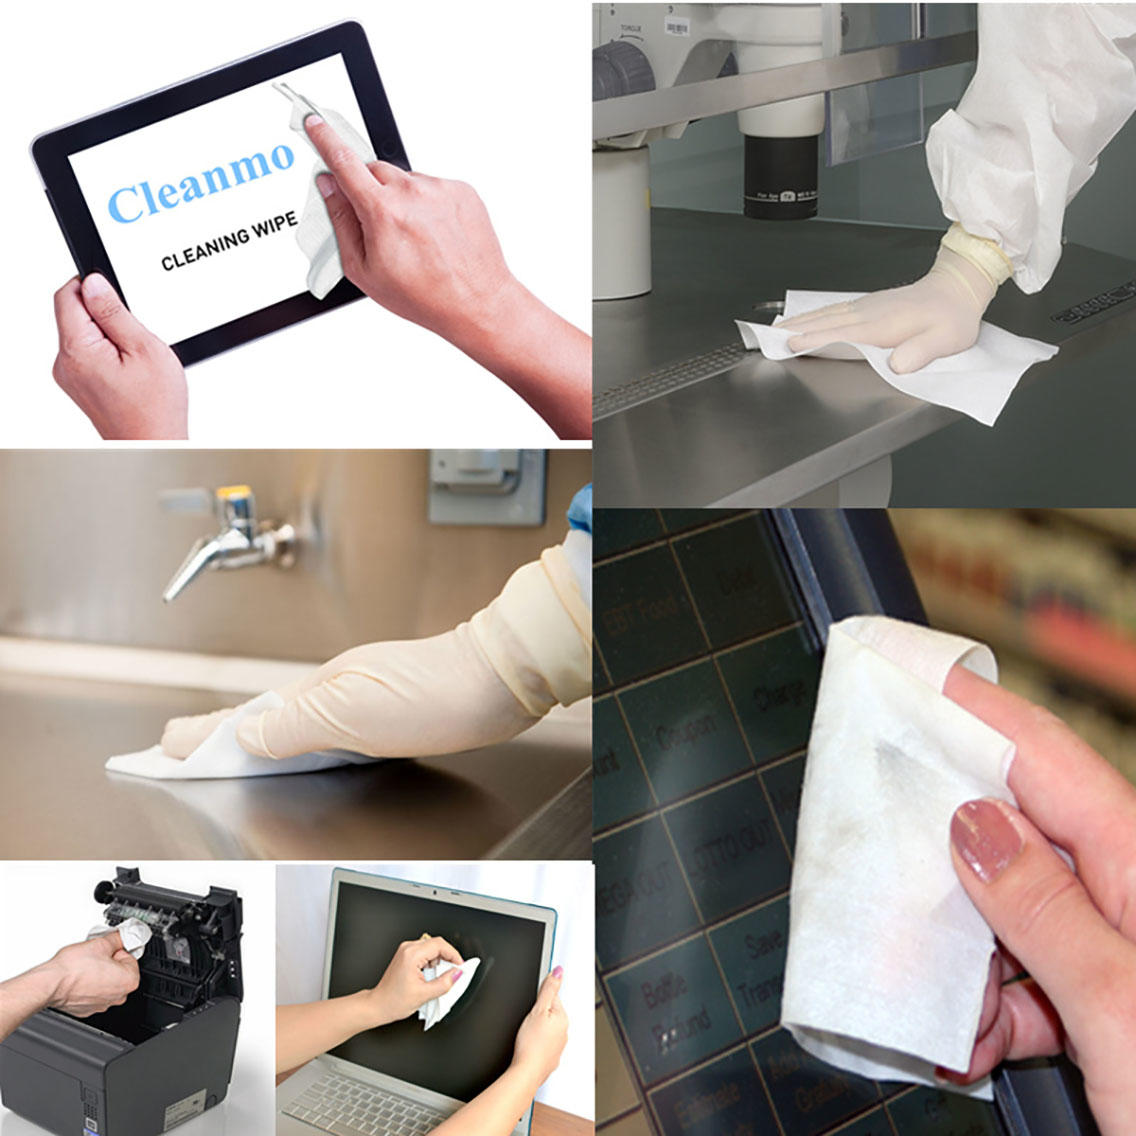 Cleanmo 40% Rayon Screen Cleaning Wipes factory for Check Scanners